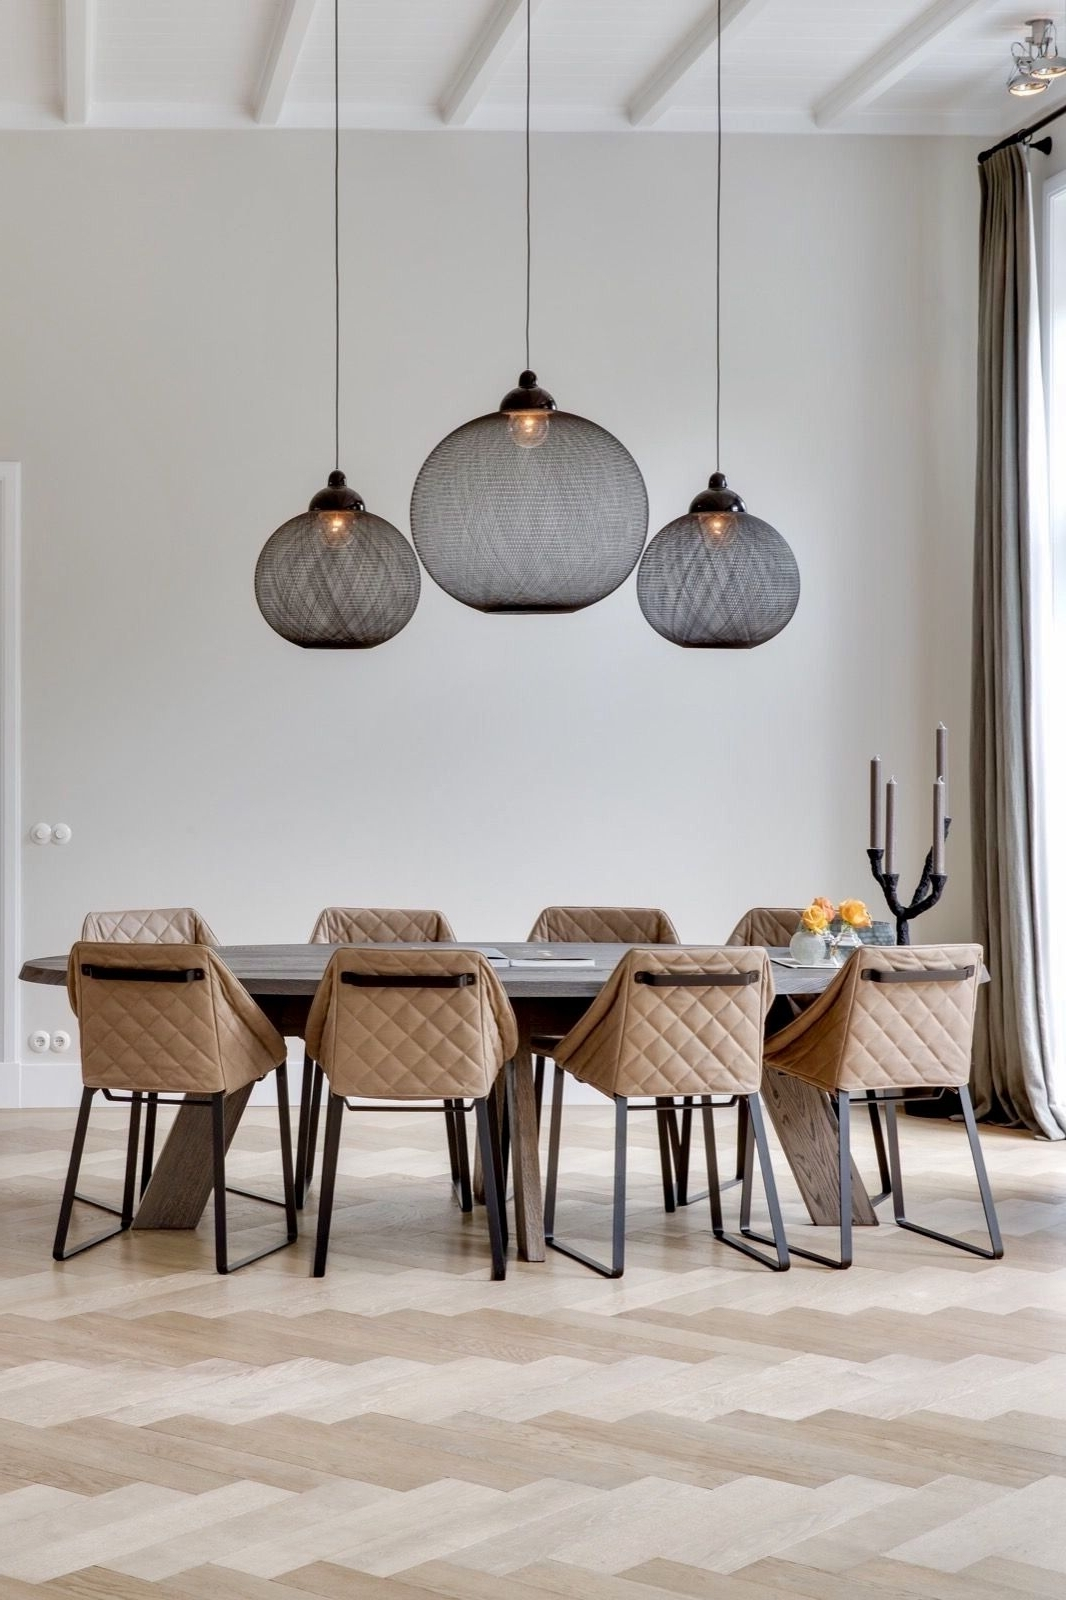 22 Best Ideas Of Pendant Lighting For Kitchen, Dining Room And For Most Recently Released Lights For Dining Tables (View 3 of 25)